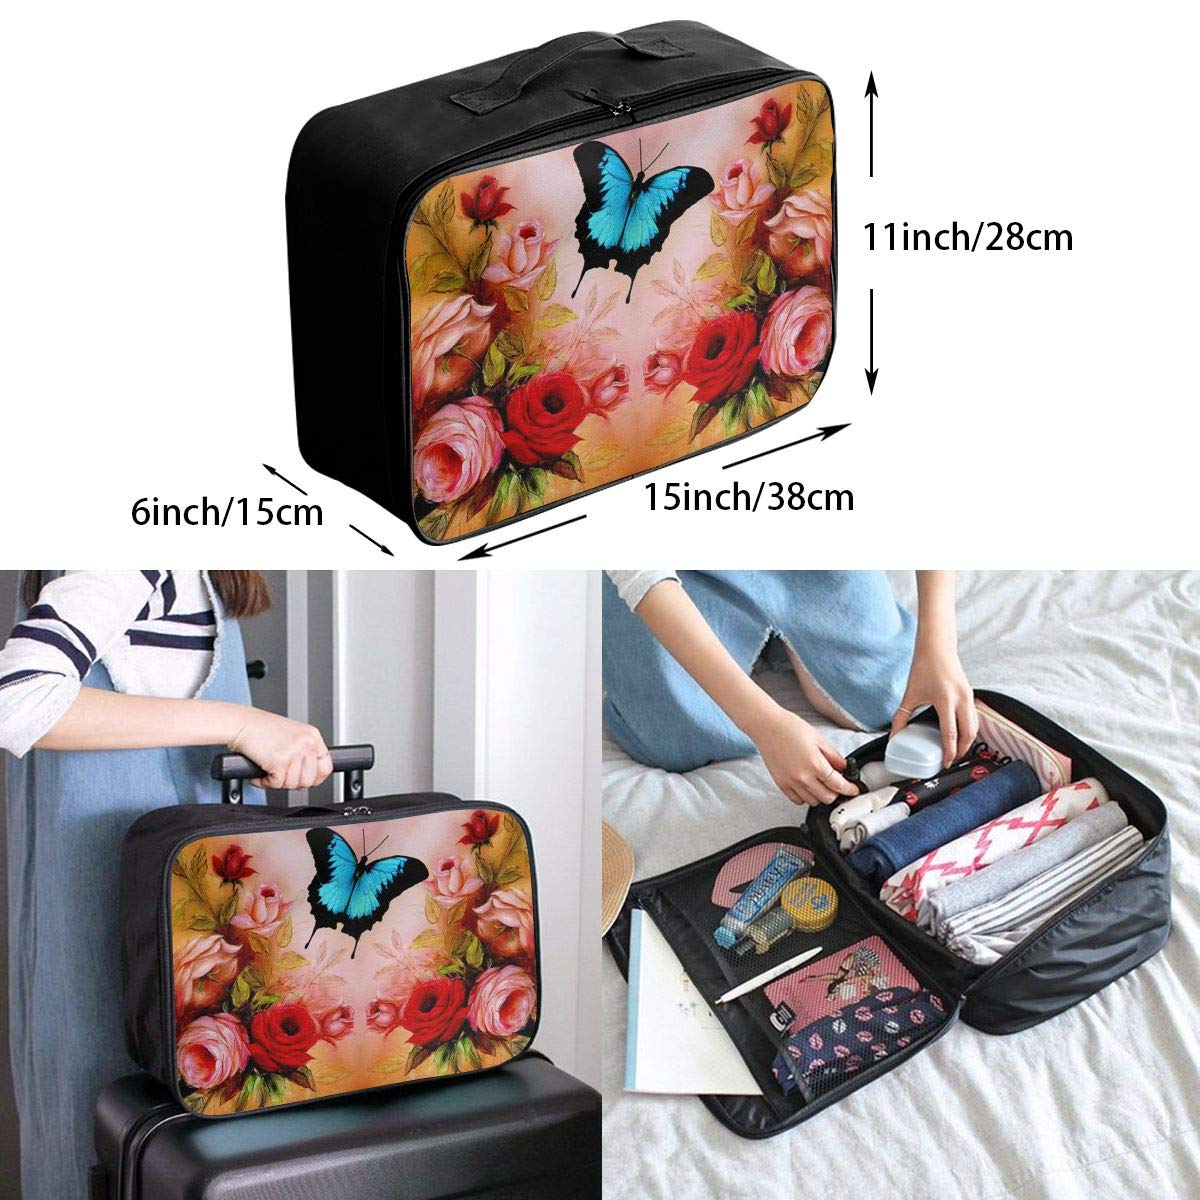 Travel Luggage Duffle Bag Lightweight Portable Handbag Fantasy Colorful Butterfly Large Capacity Waterproof Foldable Storage Tote